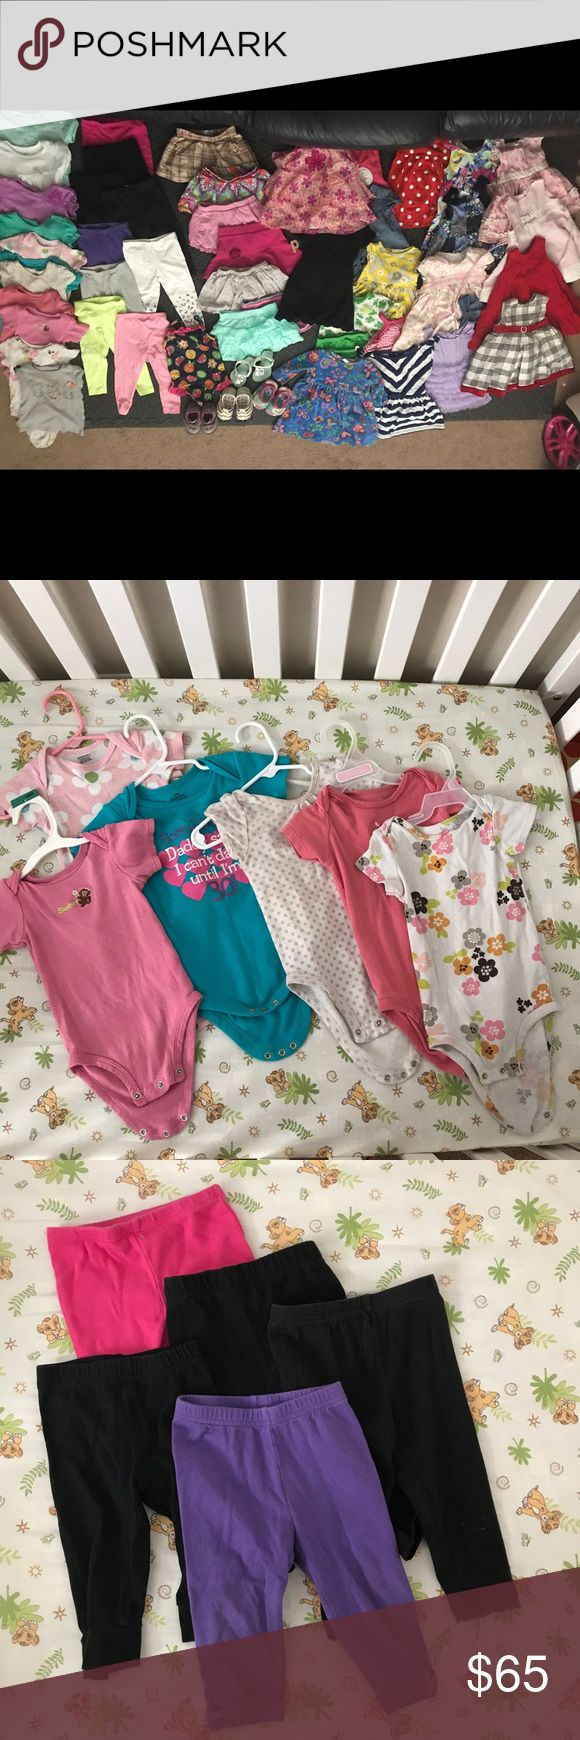 12-18 Month Girls Huge Bundle This is a great deal! Big bundle of Girls 12-18 Month clothes, some clothes may have very small imperfections and stains (few onesies and leggings) but for the most part are in good used condition. Note photos for condition on Sandals they have been well worn but would be great play Shoes. Lot Of name brand: Carter's, Gymboree, Nautica, and more. Smoke free house.  19 Dresses 7 Skirts 9 Pairs of Leggings 10 Onesies  1 Shirt 1 Swimsuit  3 Pairs of Size 4 Shoes 1…